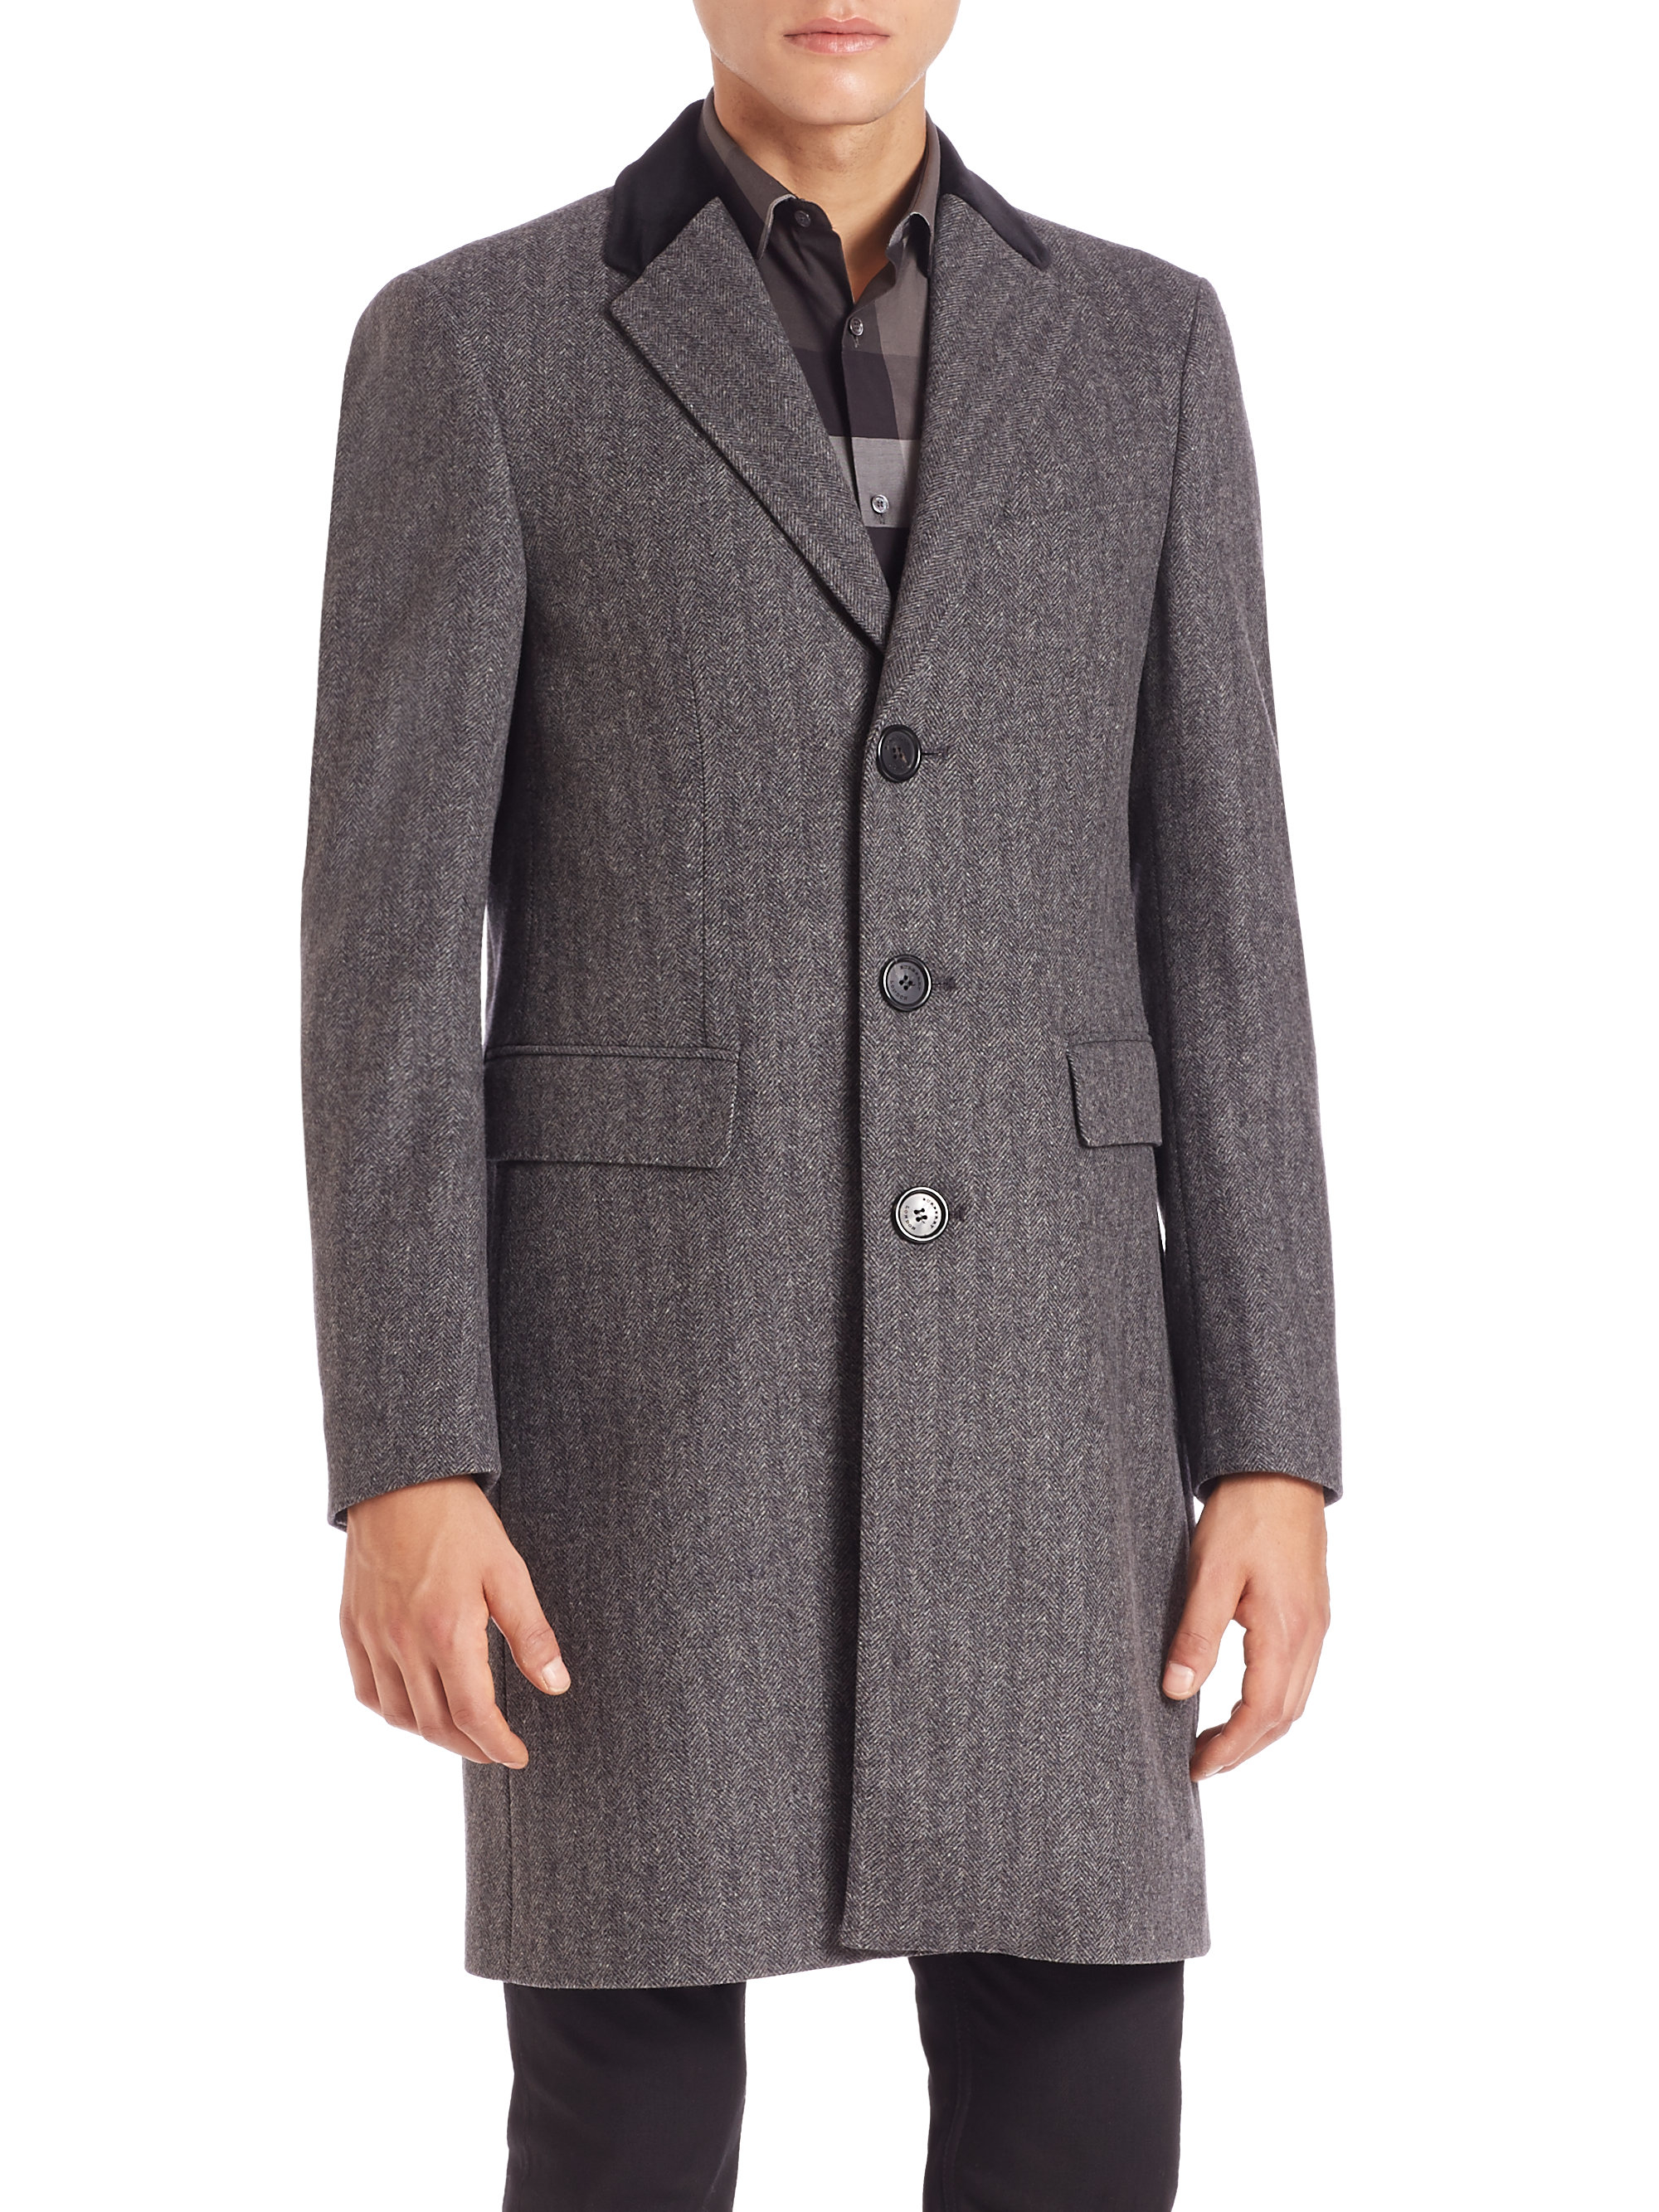 Lyst Burberry Loxton Crombie Wool Cashmere Coat In Gray